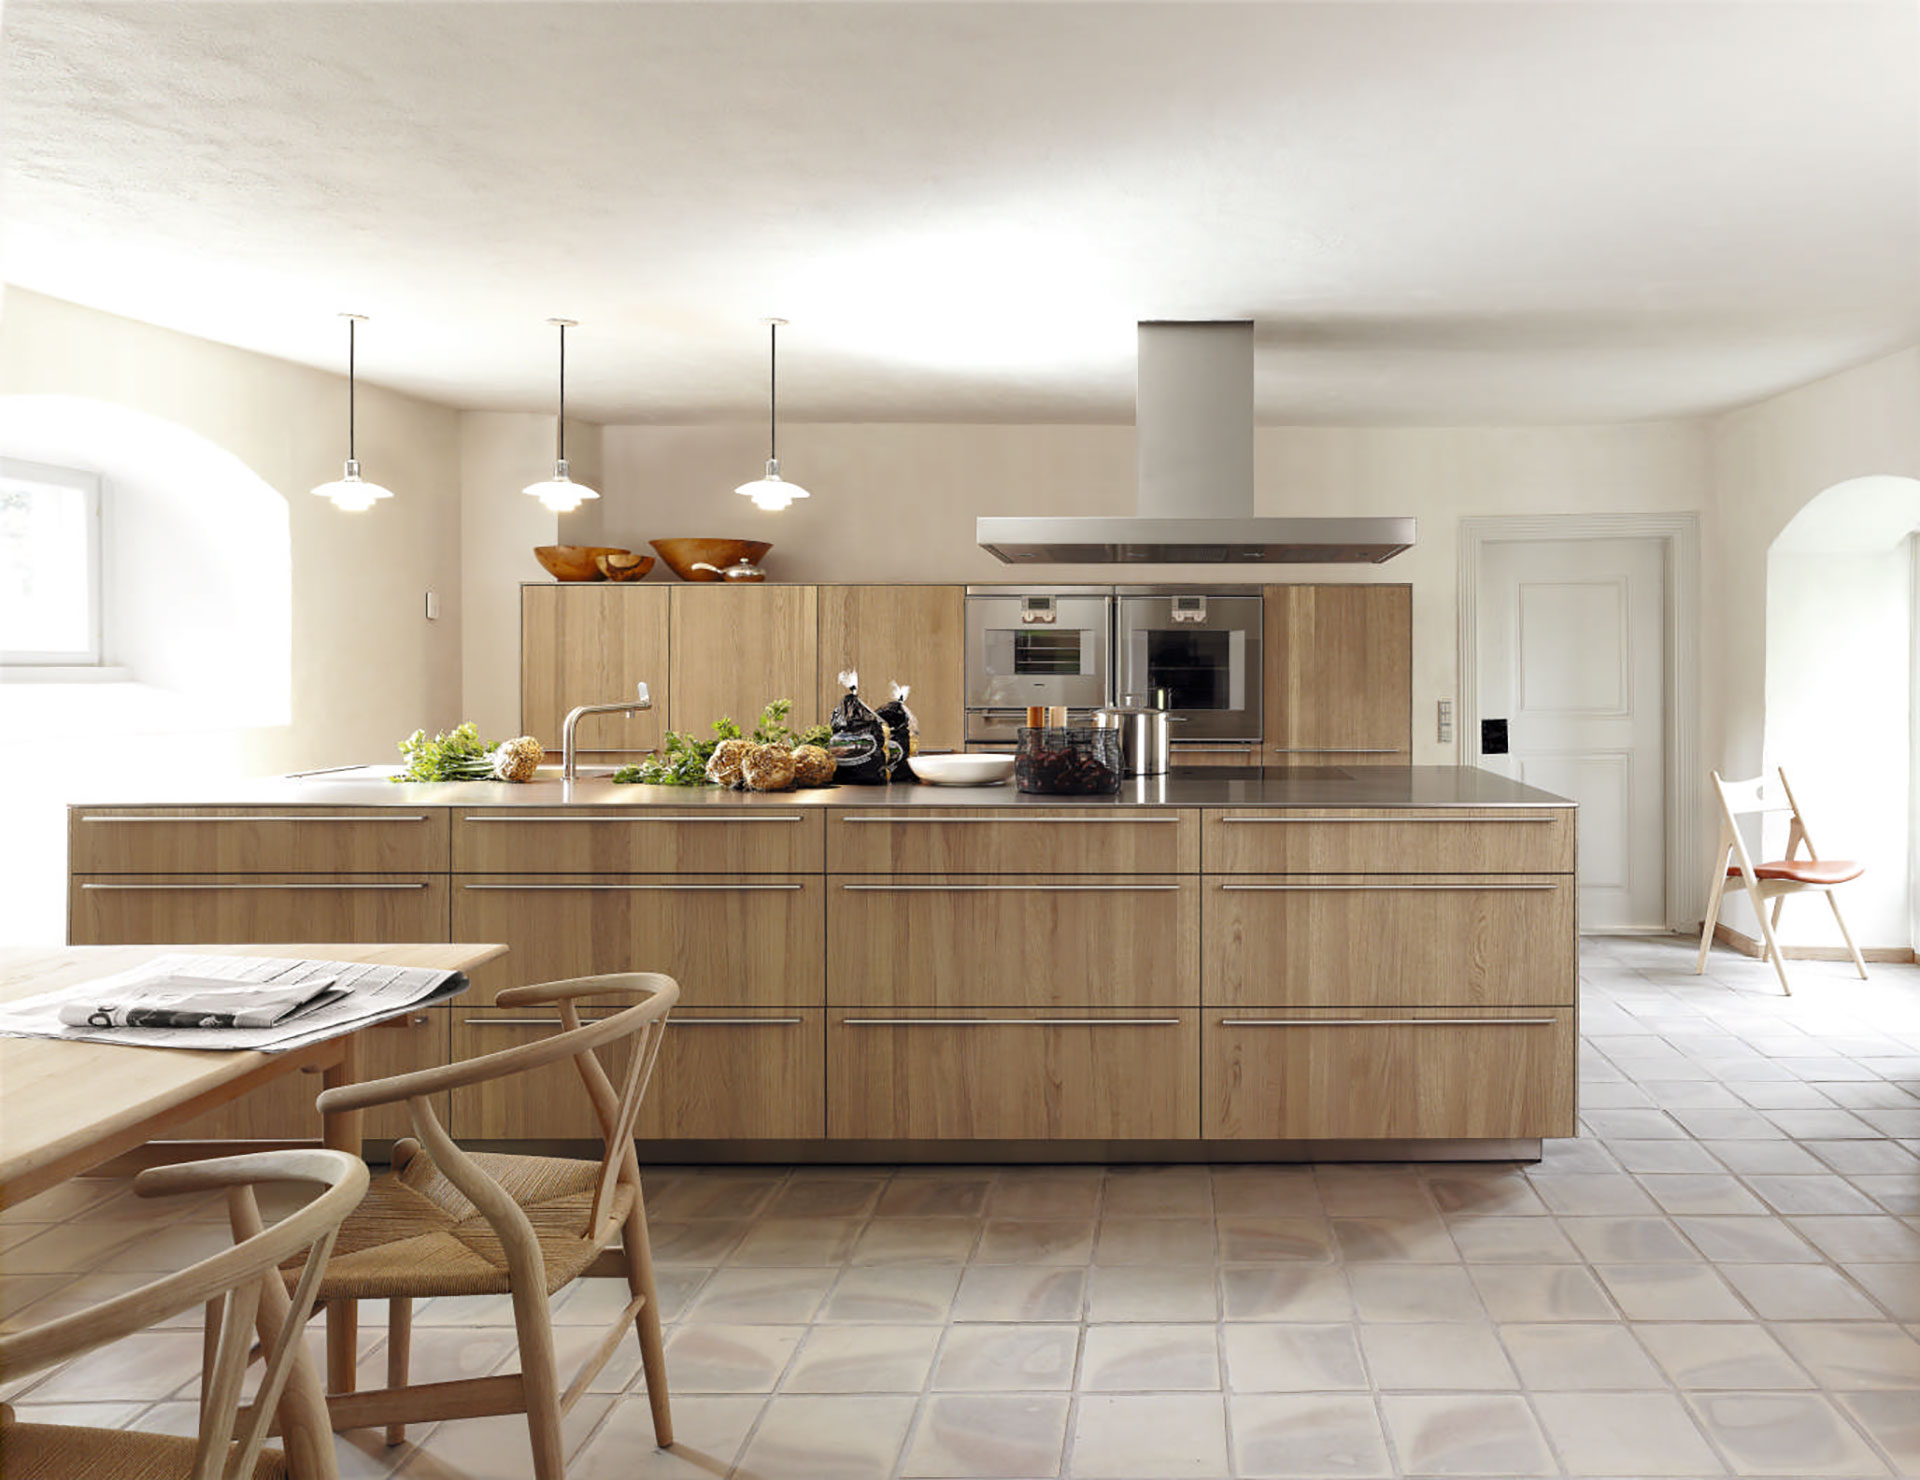 Cocinas En Madera Home - Bulthaup Scottsdalebulthaup Scottsdale | Authorized